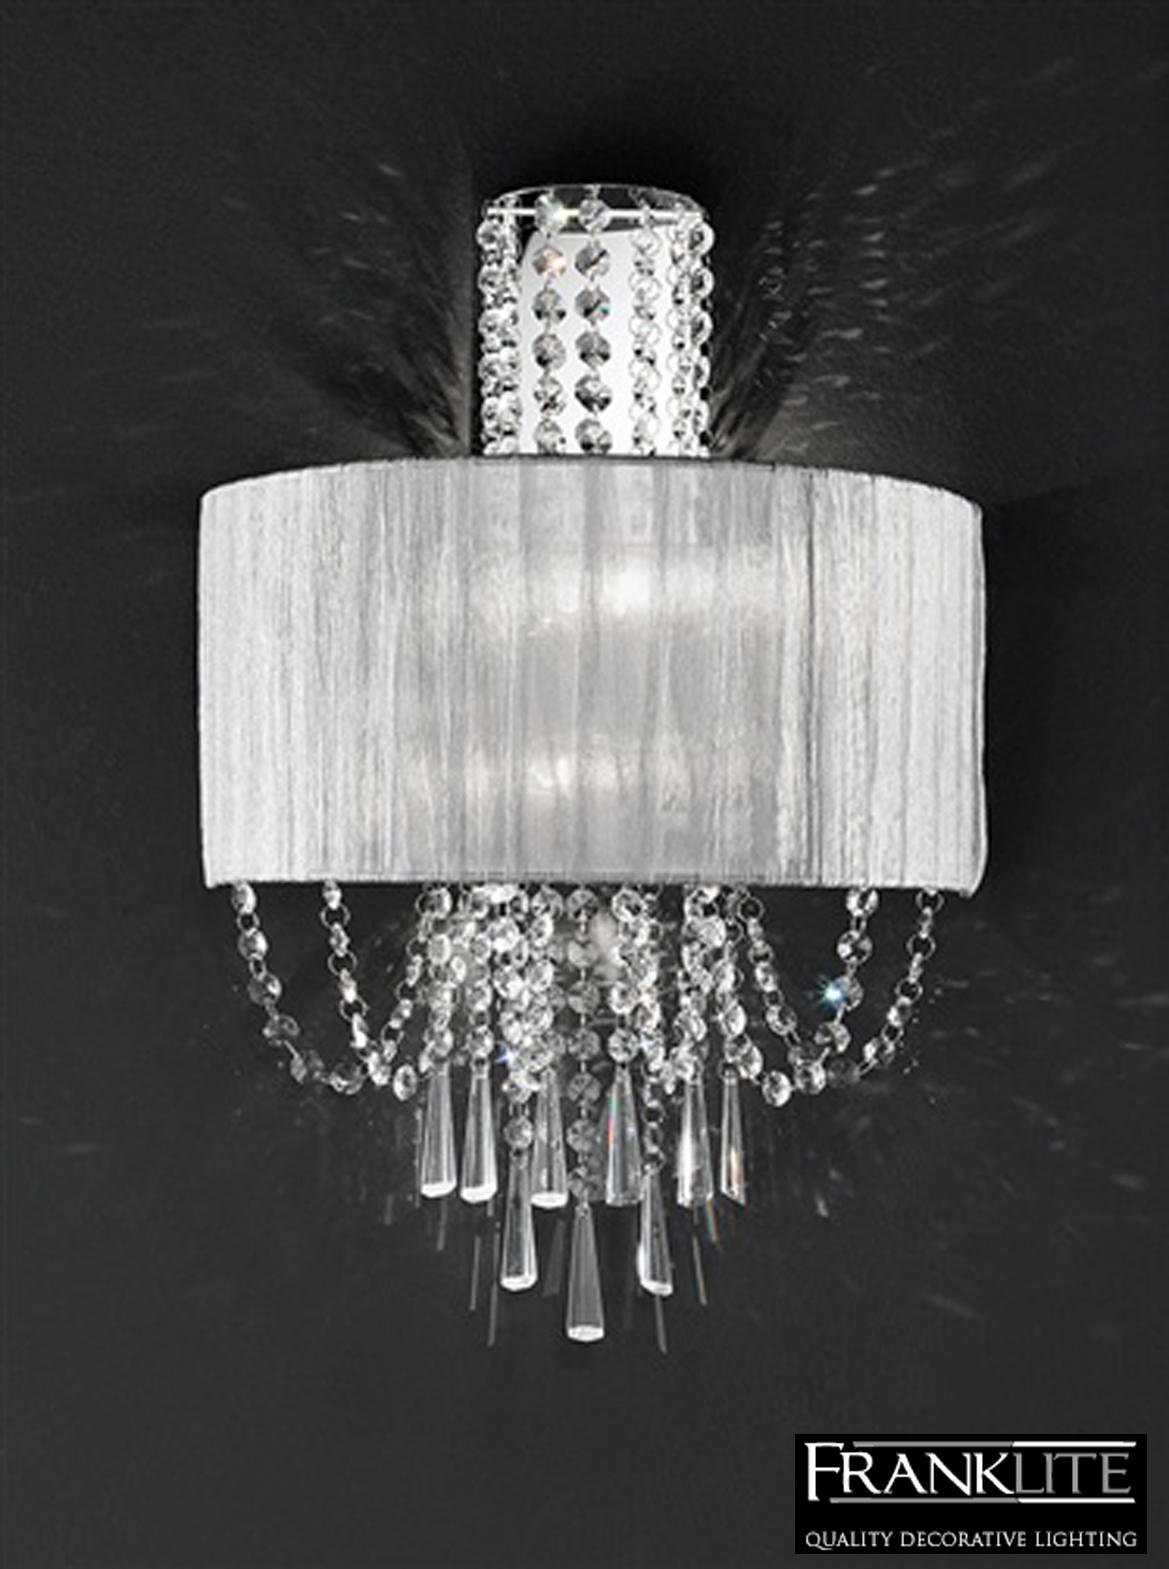 Franklite Crystal Wall Lights : Franklite Empress Crystal And Chrome Twin Wall Light - FL2303/2 from Easy Lighting